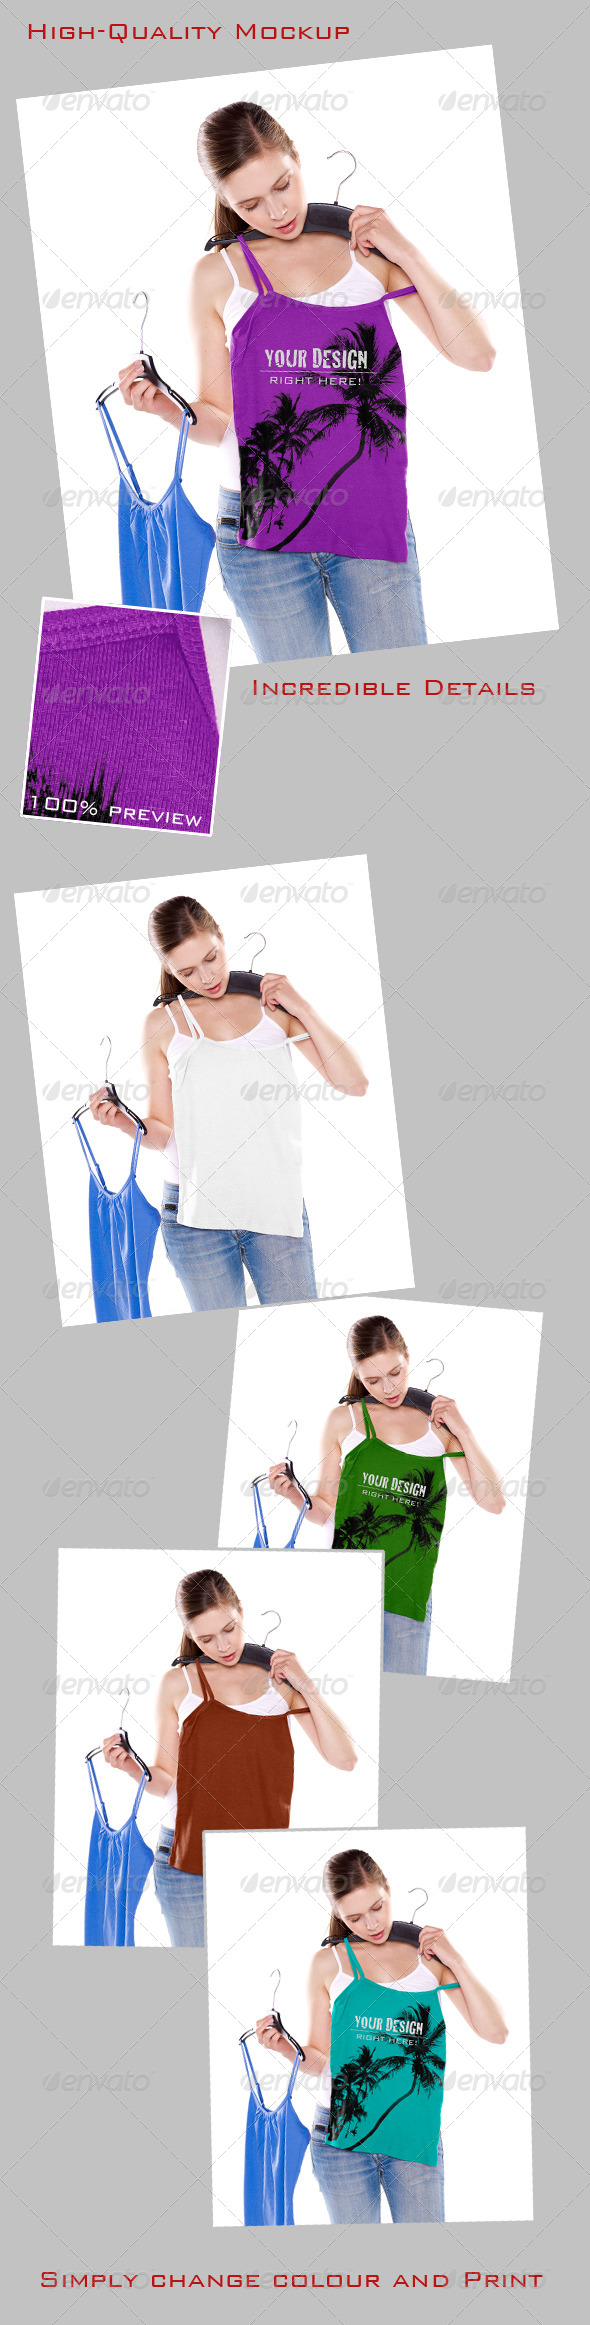 Mock-Up, Girl Trying on Top - T-shirts Apparel